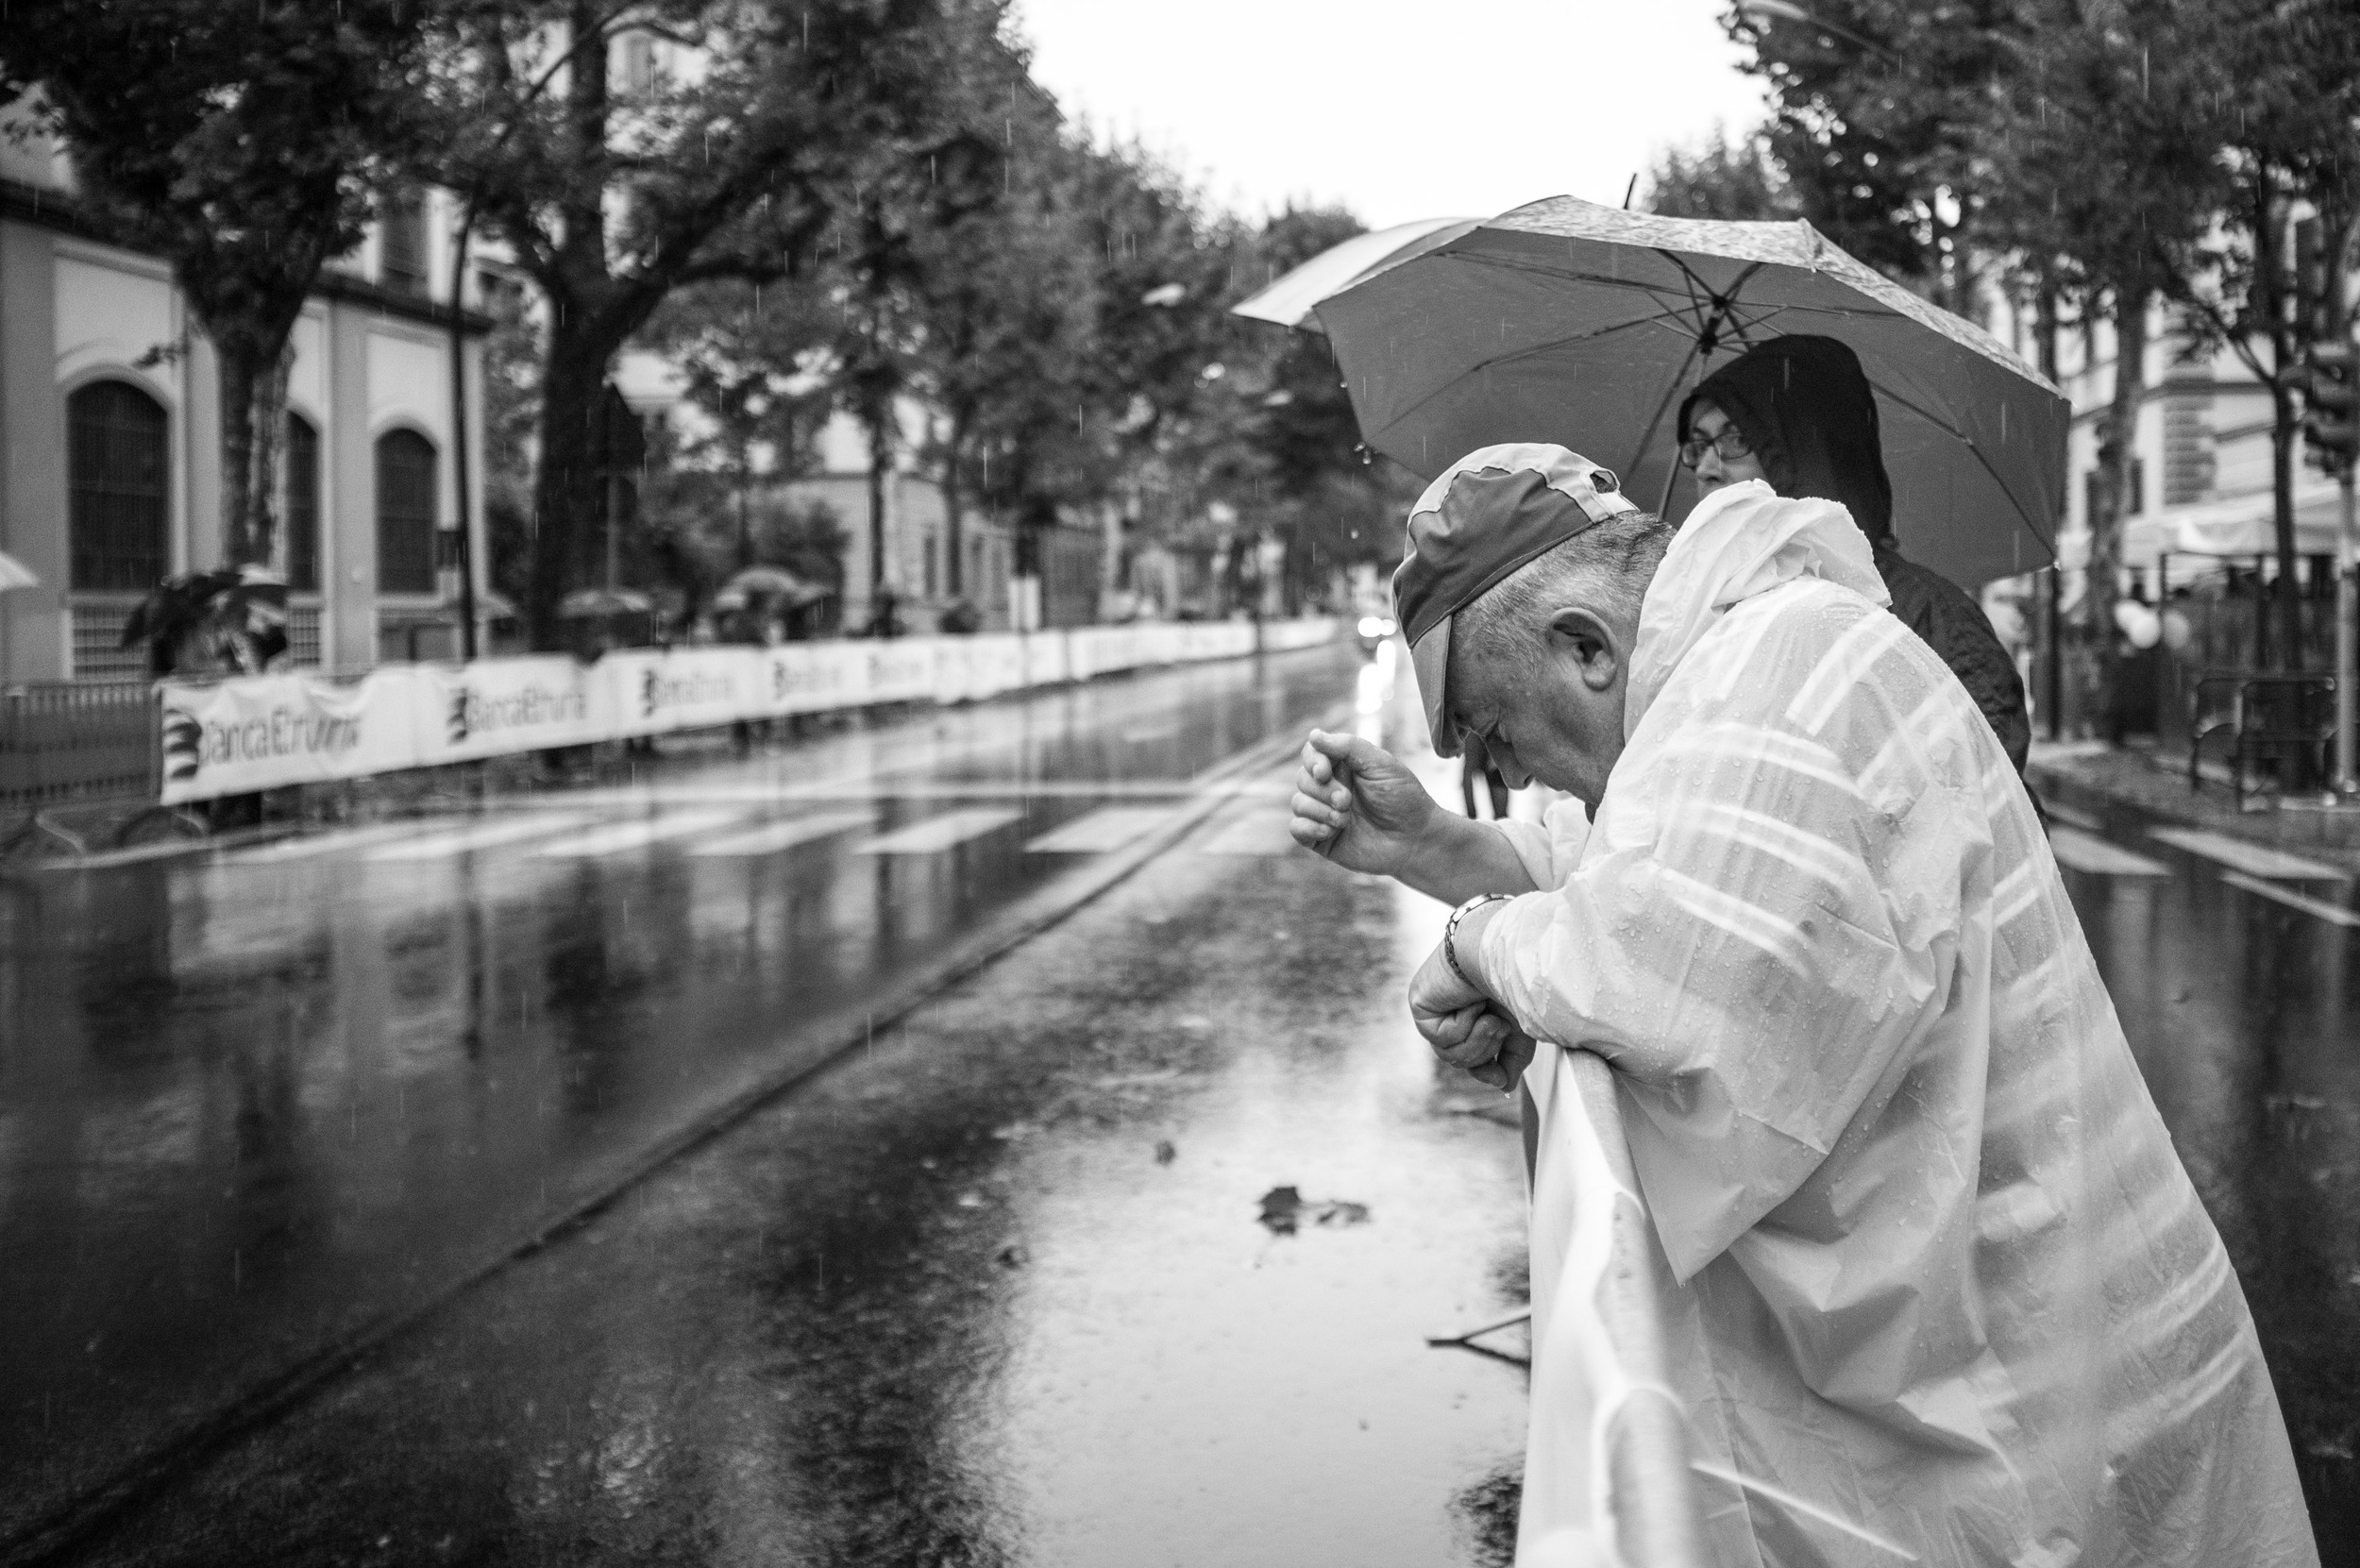 4. A devoted fan stands in the rain after the race passes at the men's 2013 World Championship road race in Florence, Italy.